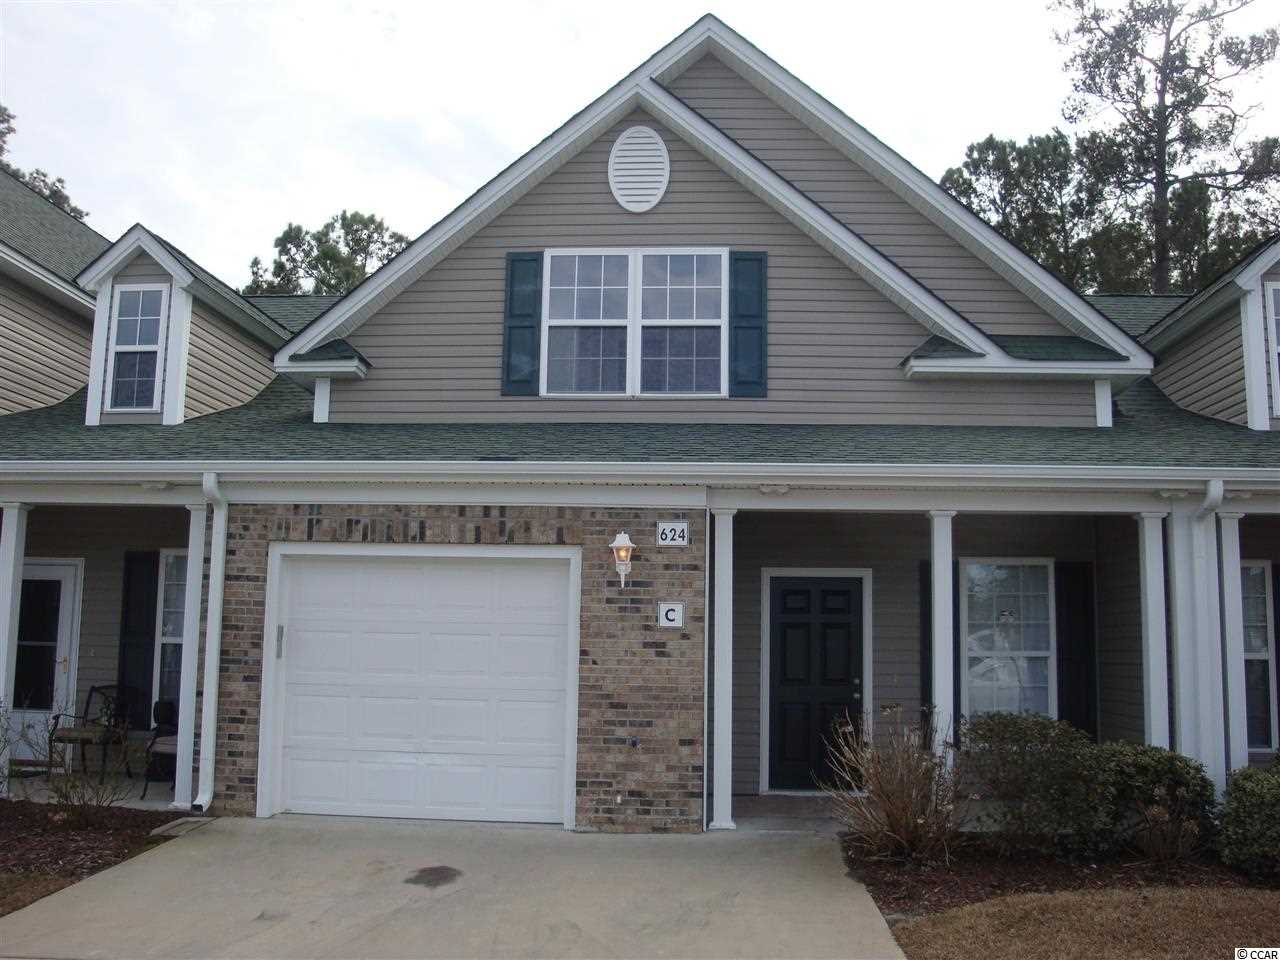 Condo For Sale At Park West Murrells Inlet In Murrells Inlet South Carolina Unit Listing Mls